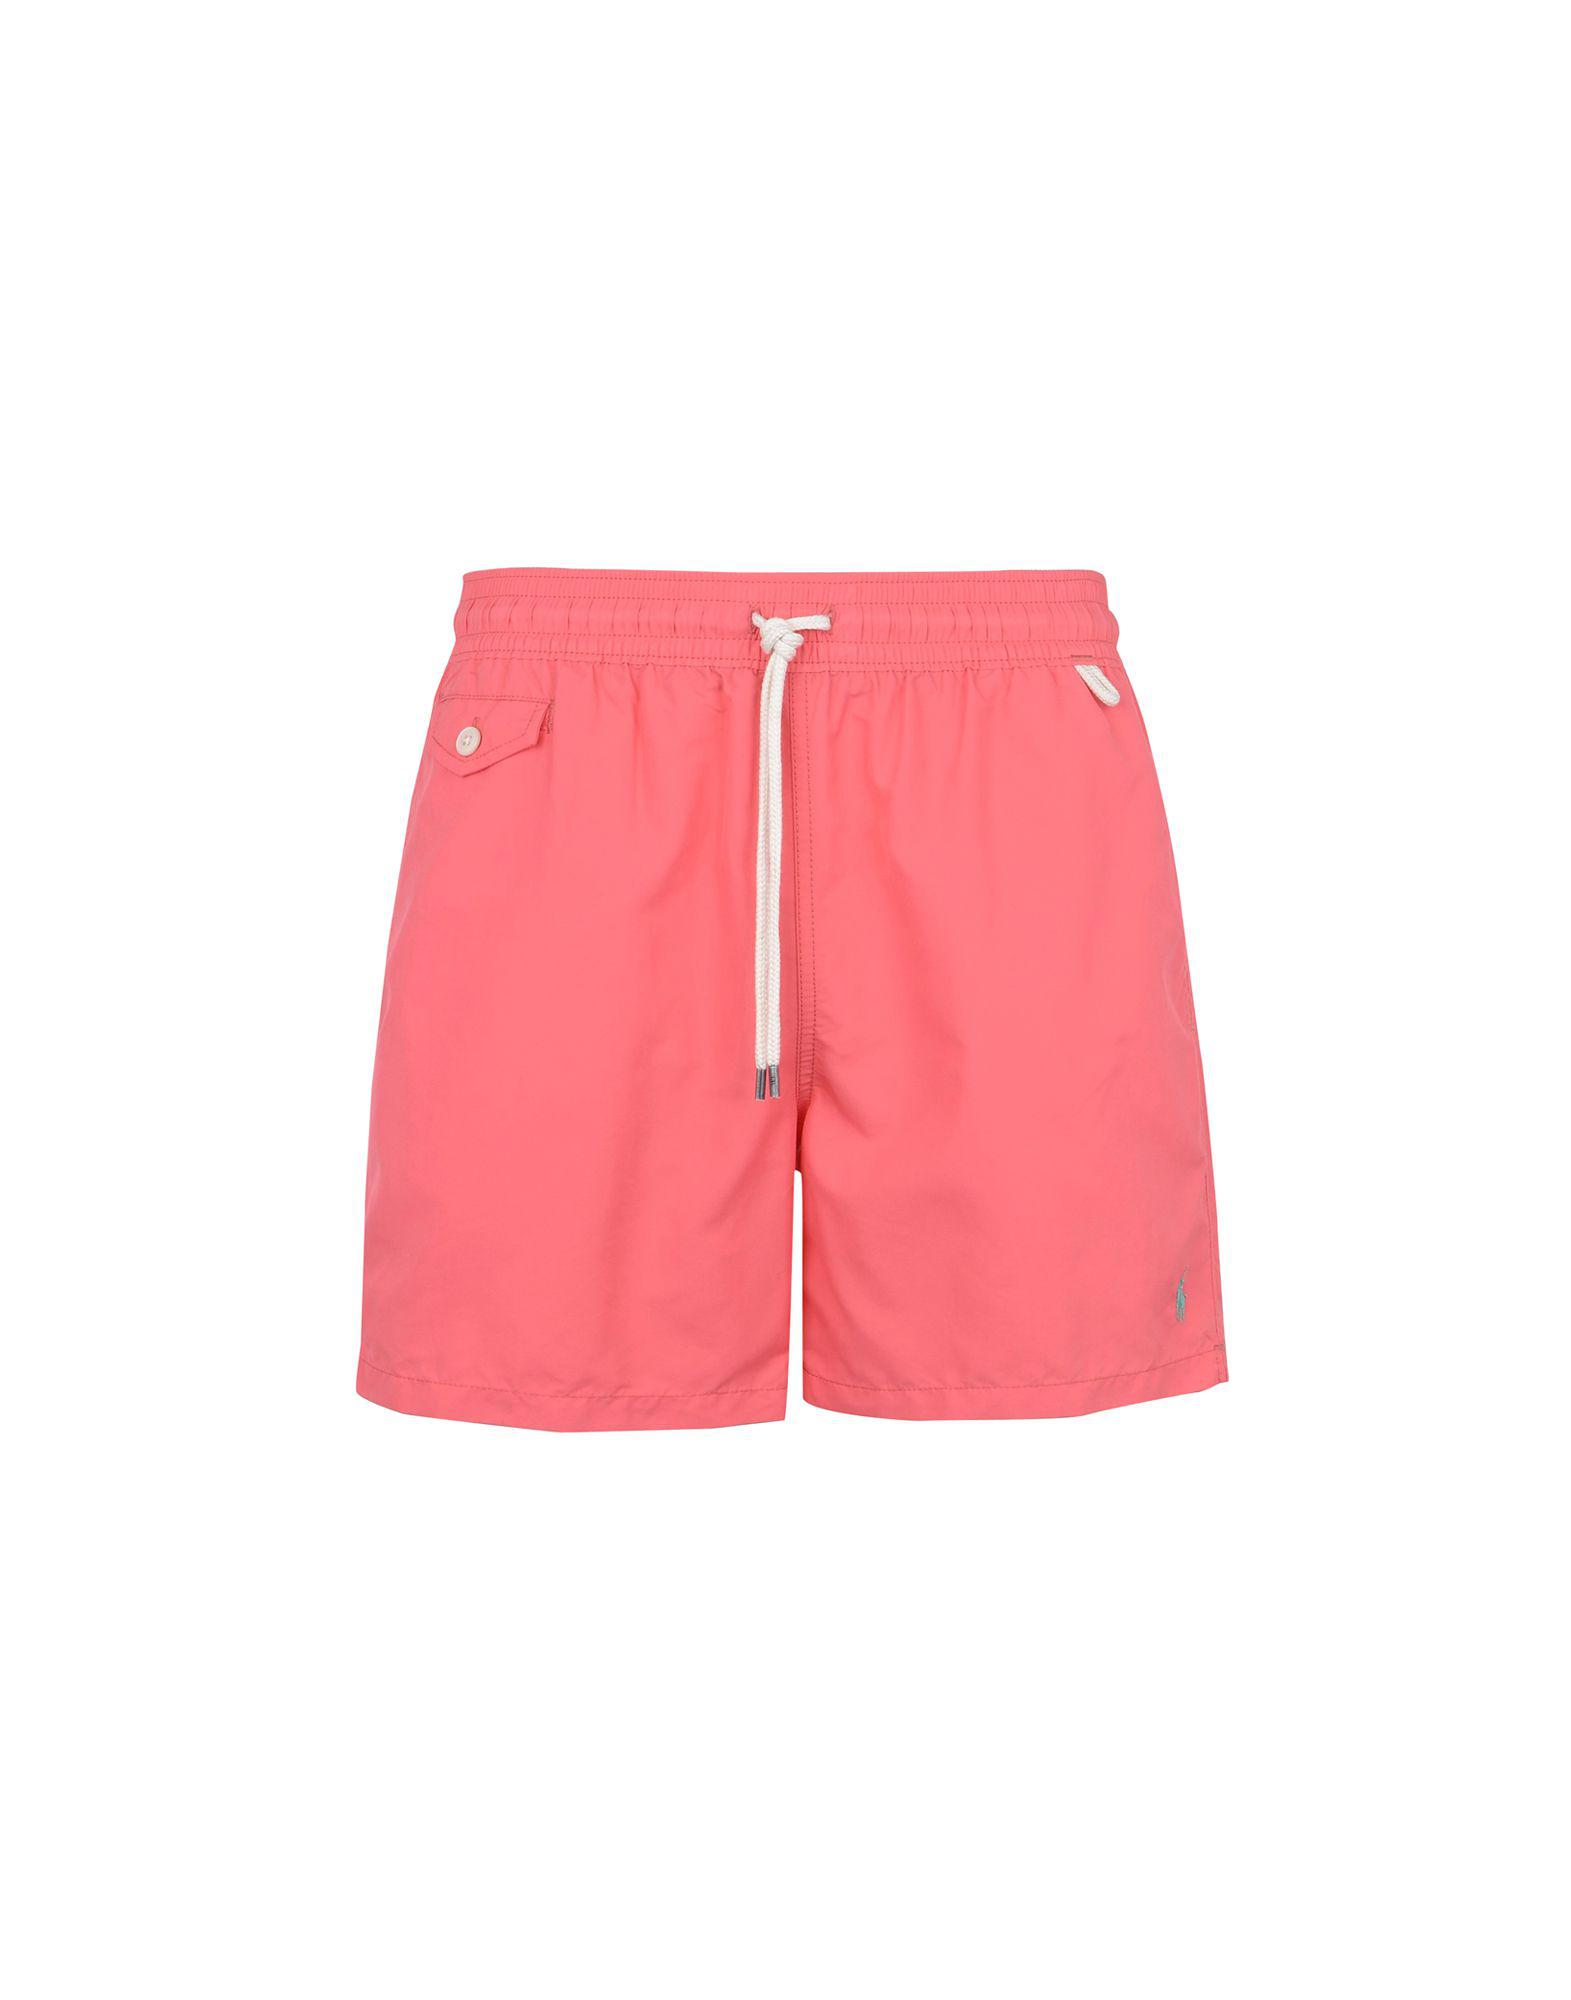 f60a9fc7d6bc3 Polo Ralph Lauren Swimming Trunks in Pink for Men - Lyst